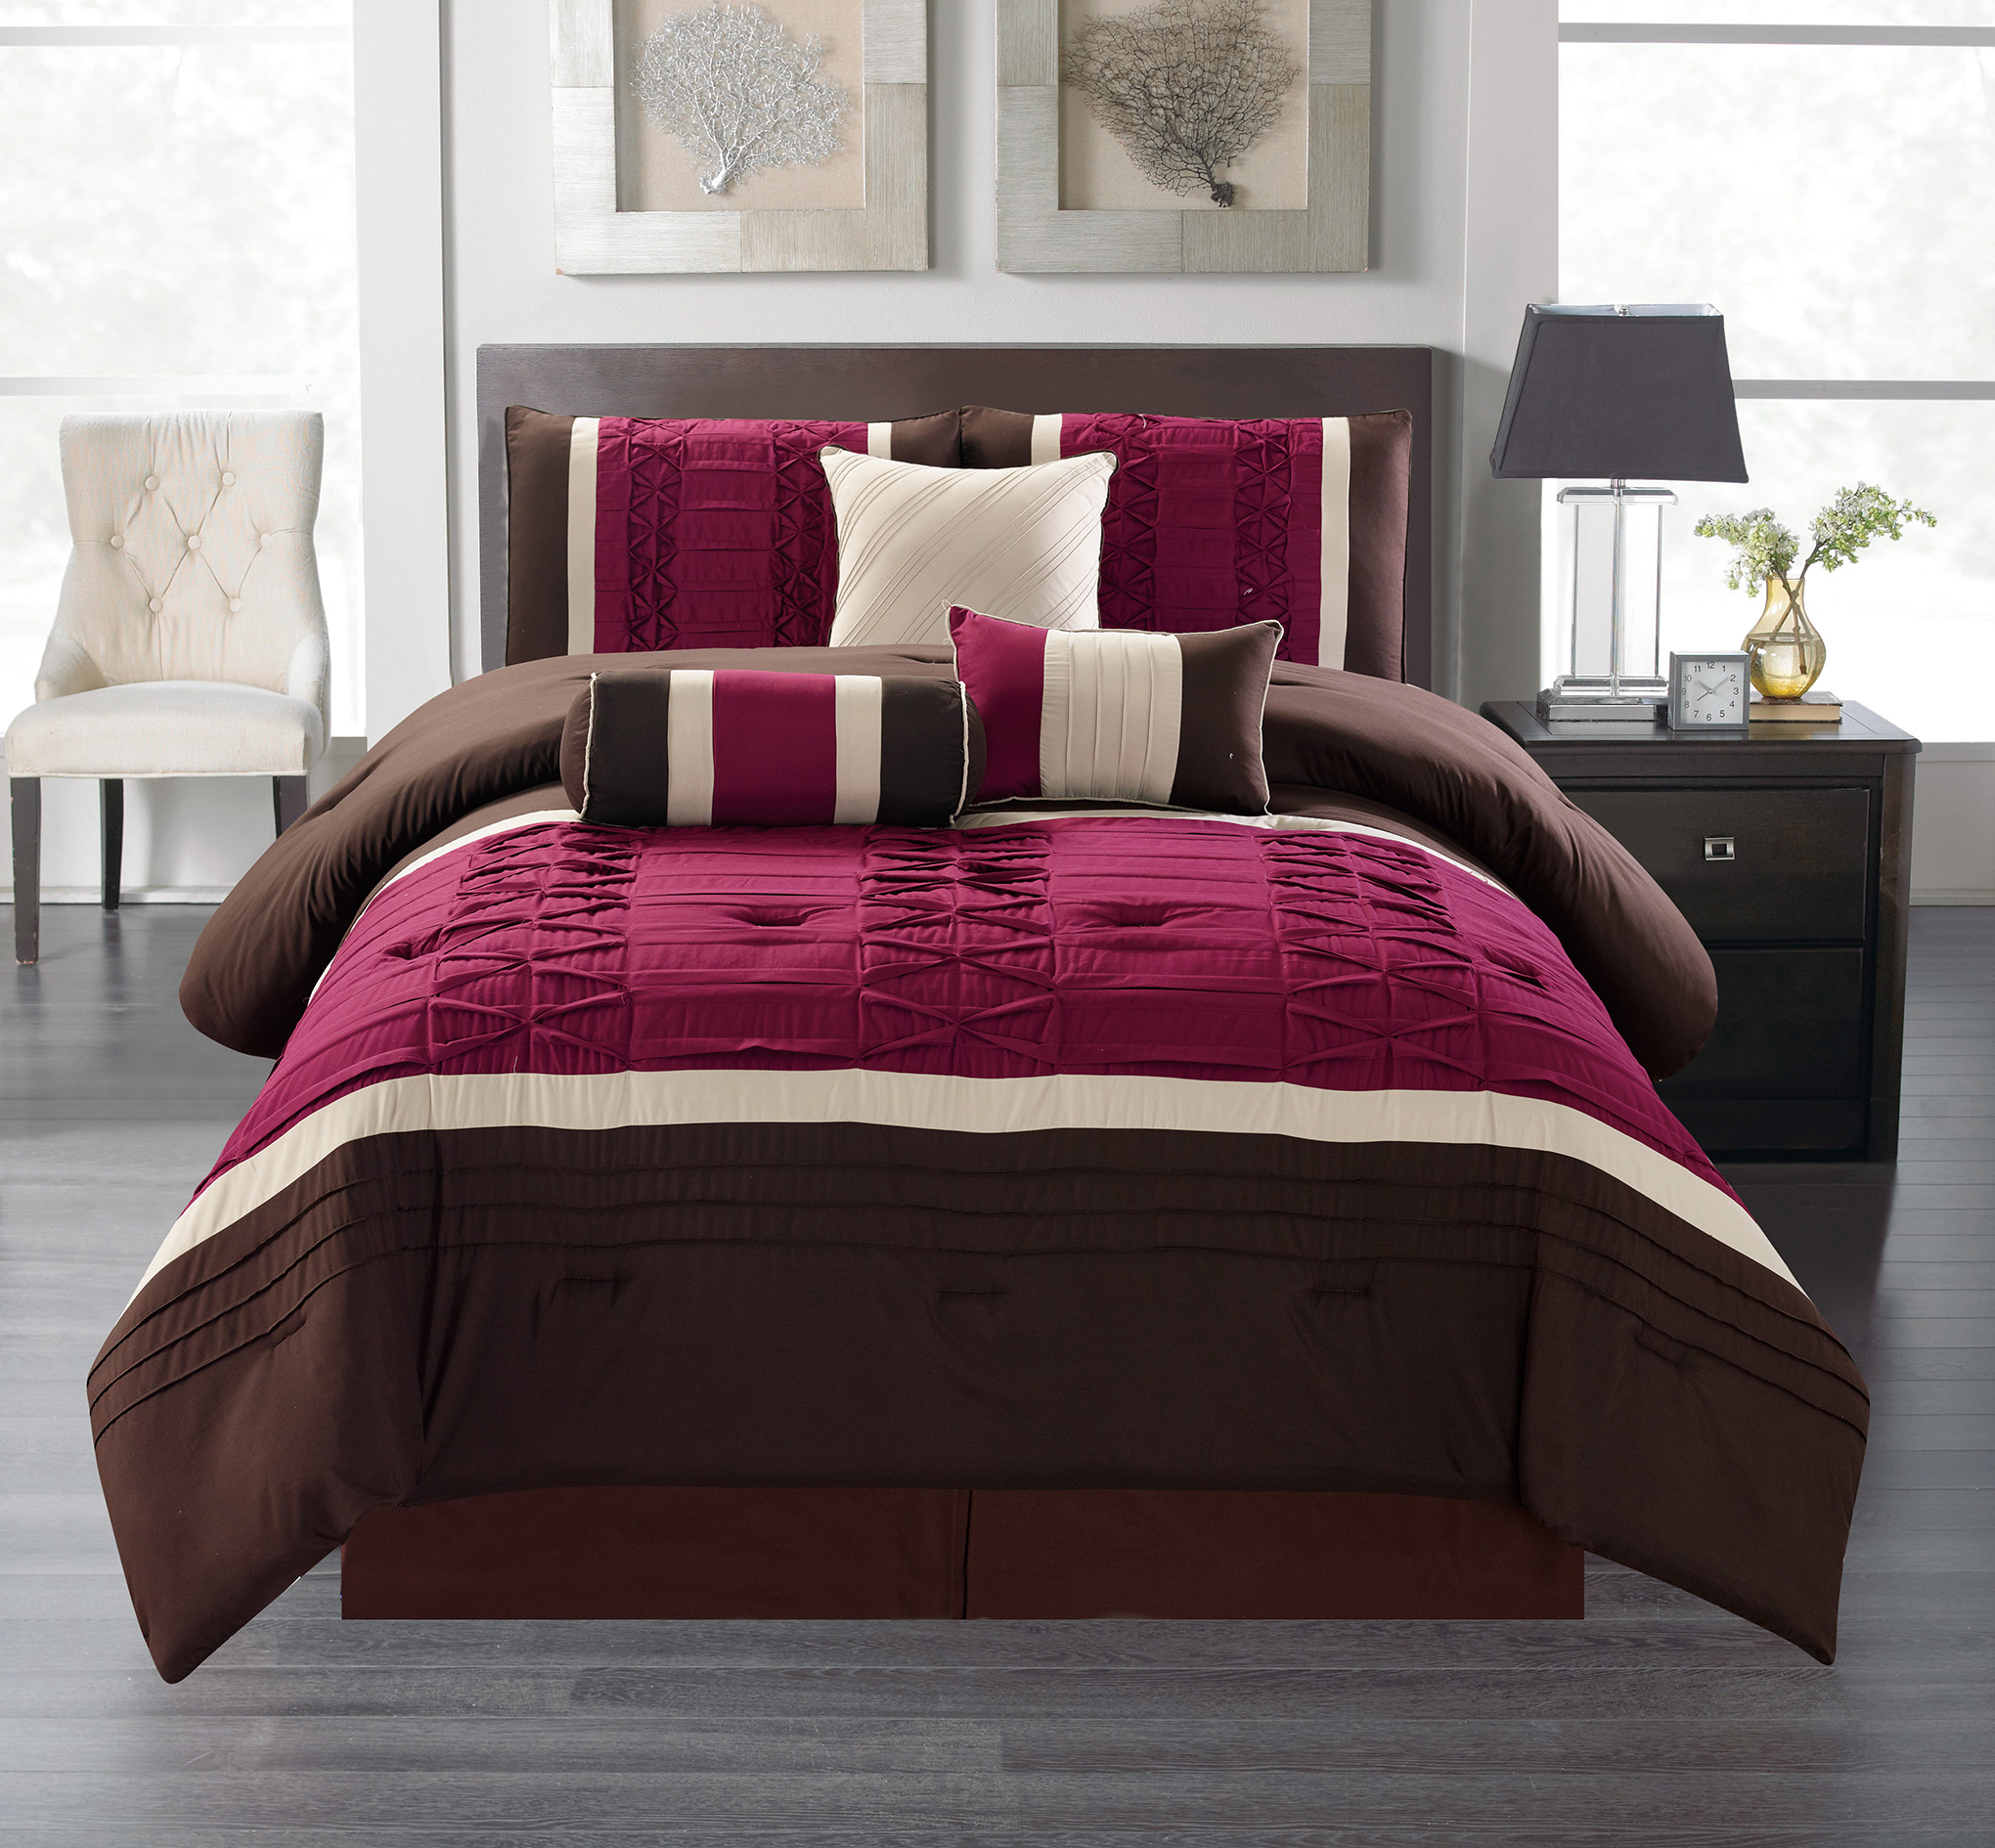 Monroe King Size 7 Piece Ruffled Comforter Bedding Set